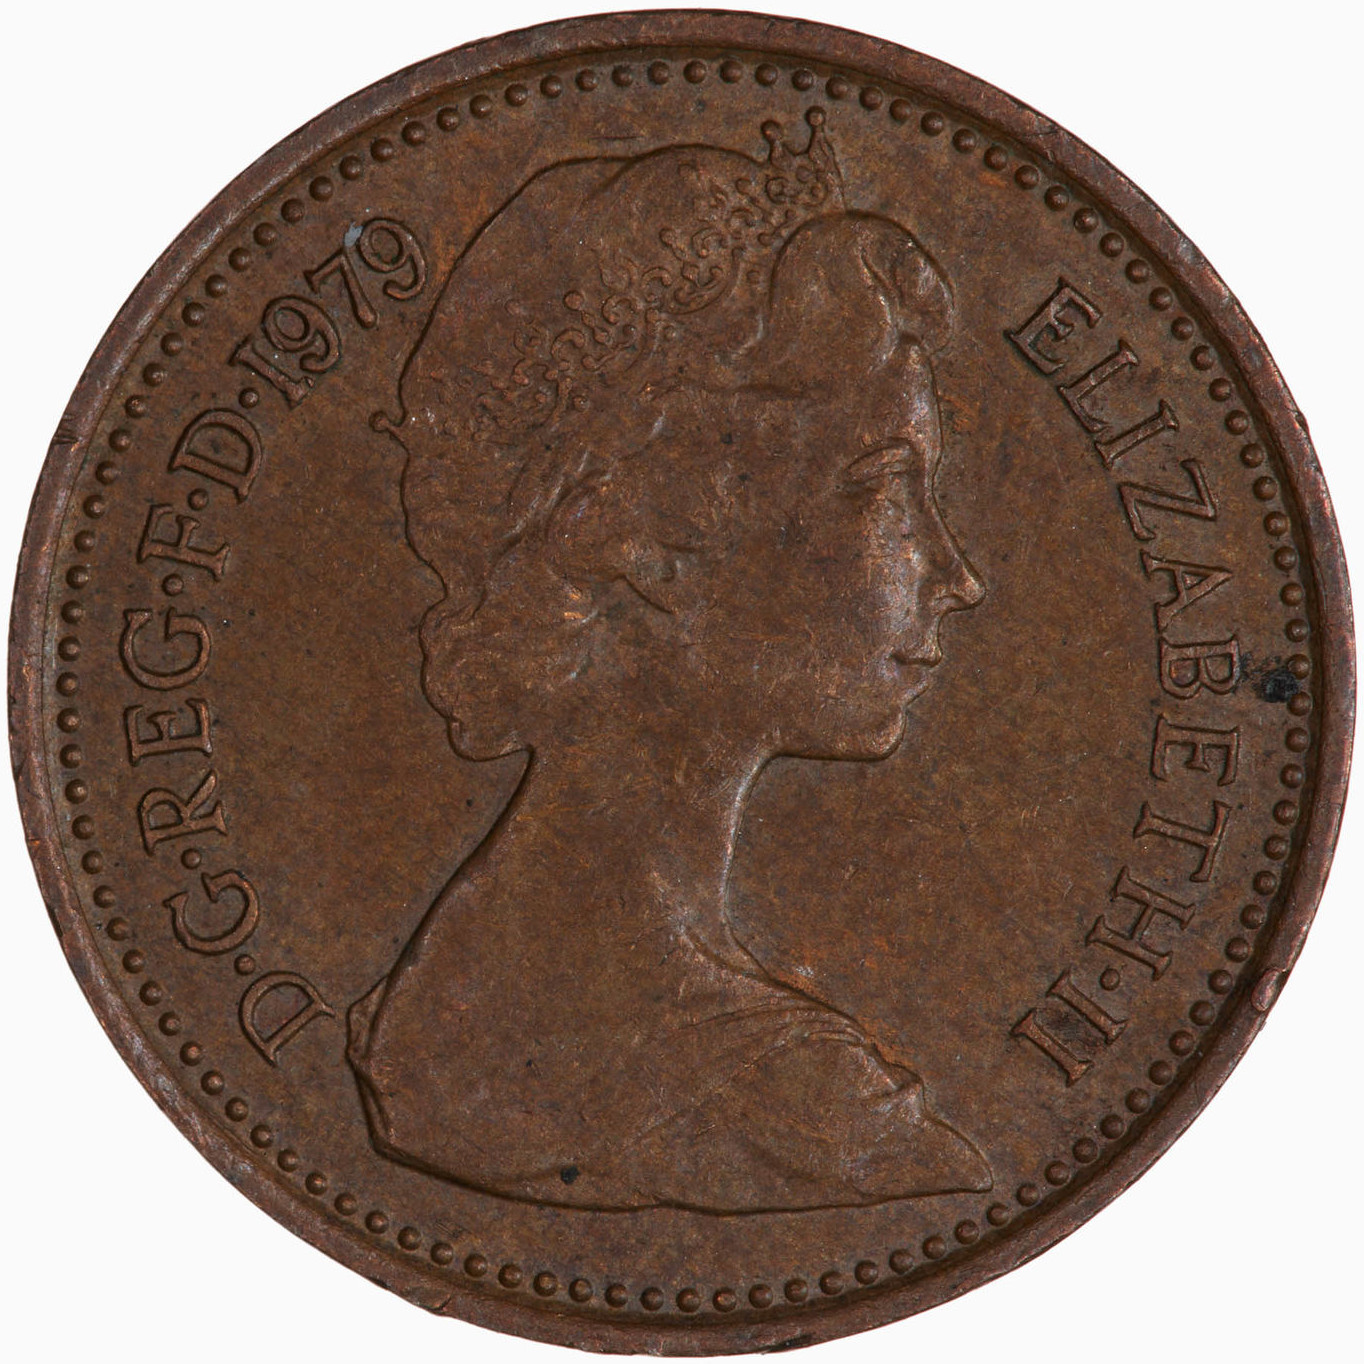 Half Penny 1979: Photo Coin - 1/2 New Penny, Elizabeth II, Great Britain, 1979